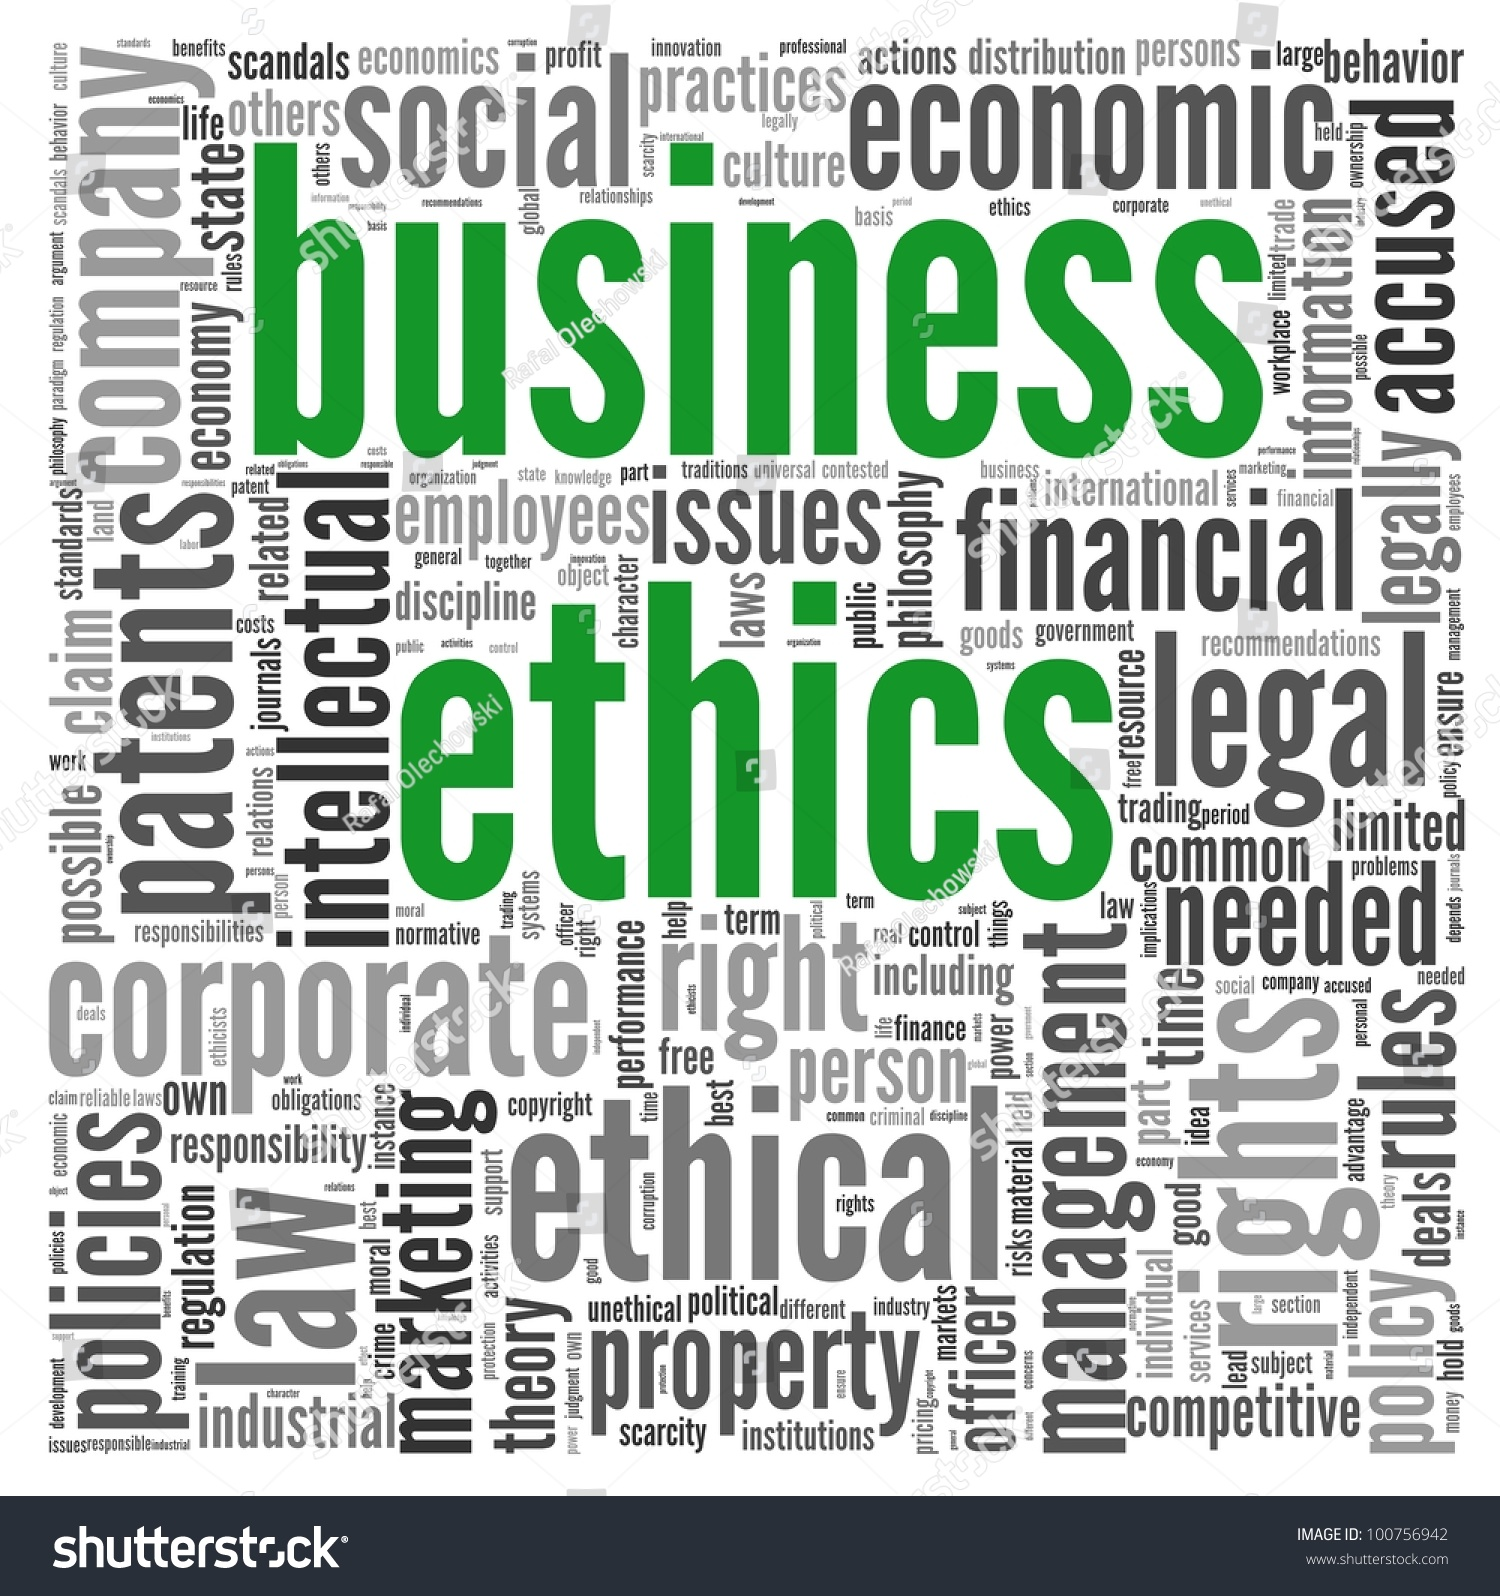 the concept of business ethics Encyclopedia of business, 2nd ed business ethics: bo-co.